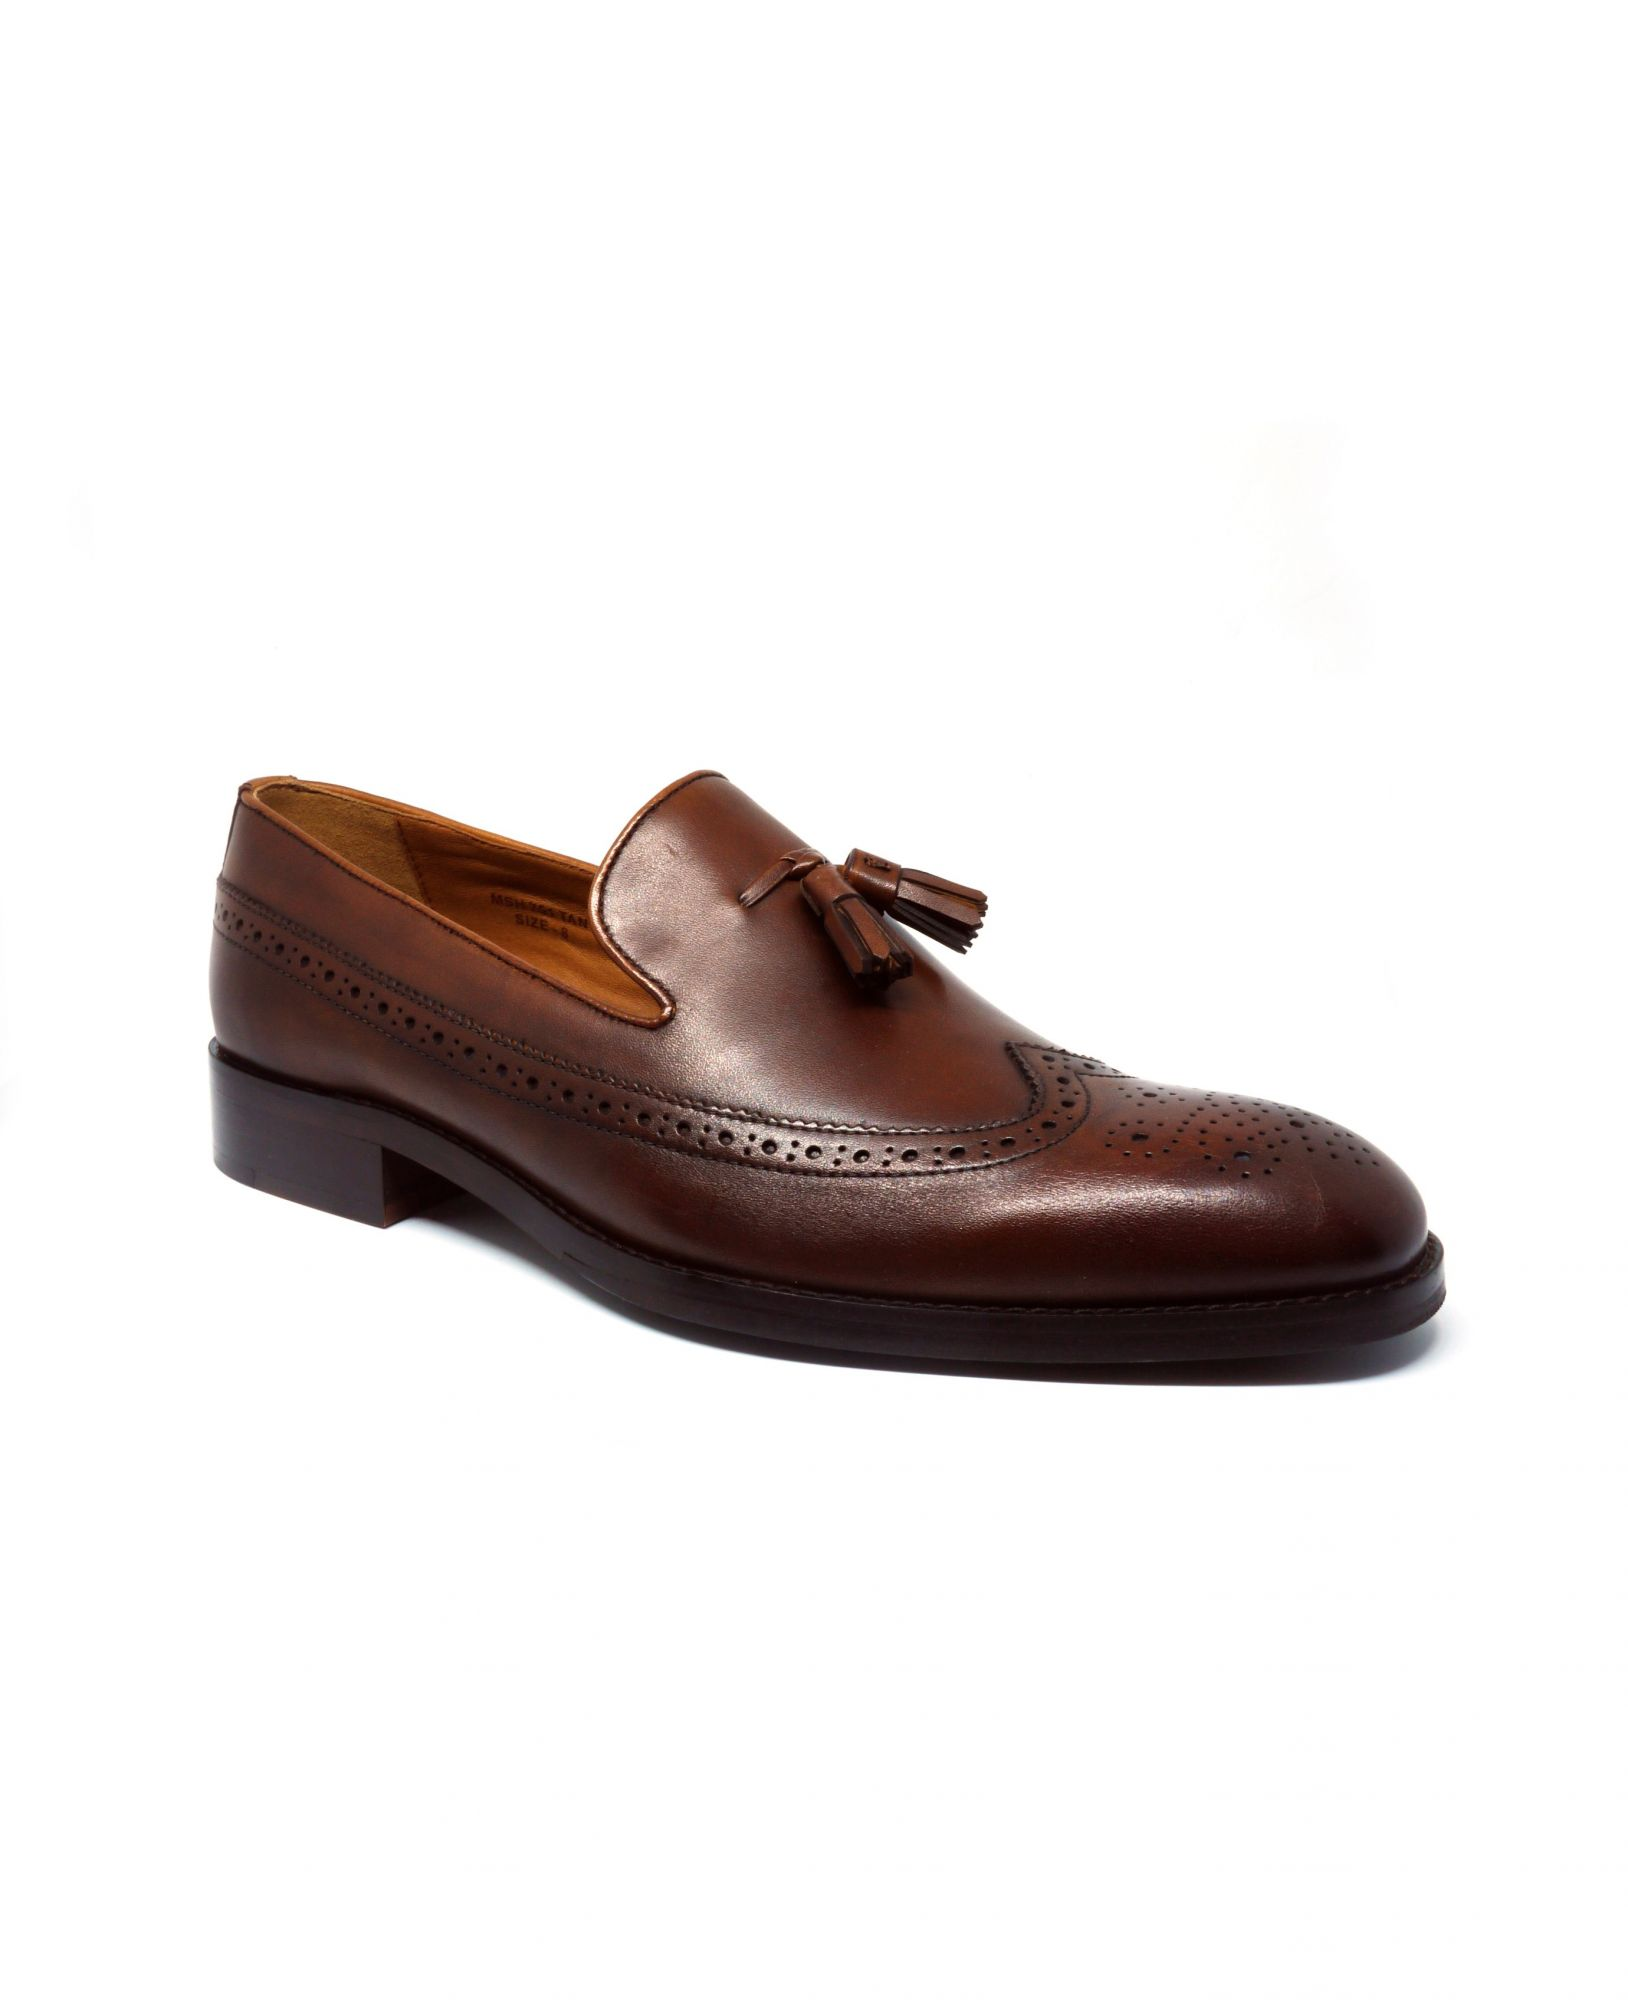 Chocolate Brown Leather Tasselled Loafers 11